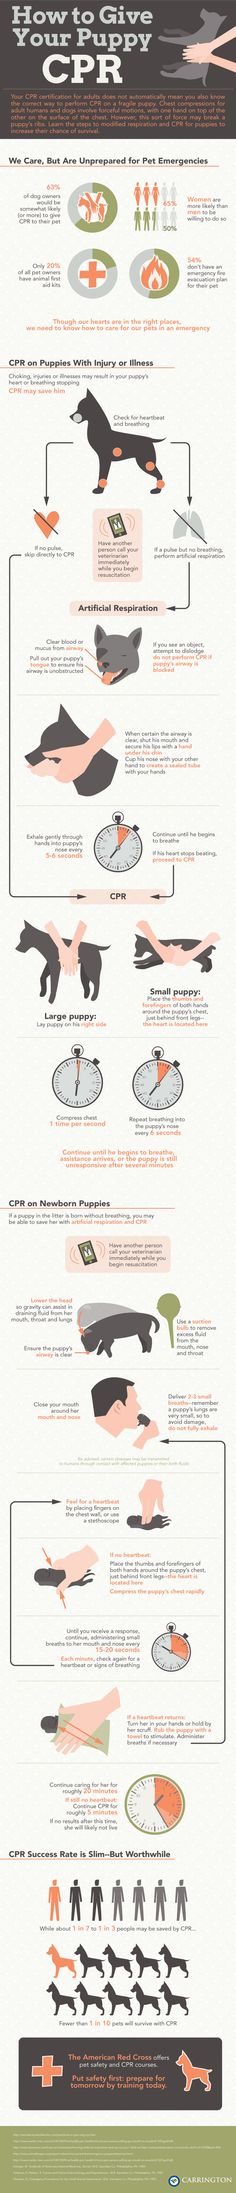 None of us wants to think about ever having to perform doggy CPR, but preparedness is the best prevention. Here's an incredible infographic on how to perform CPR on your dog - you might want to print this out and tape it to...every room in your house. Consult your vet and remember – practice (on a soft toy) will get you ready for real life situations.